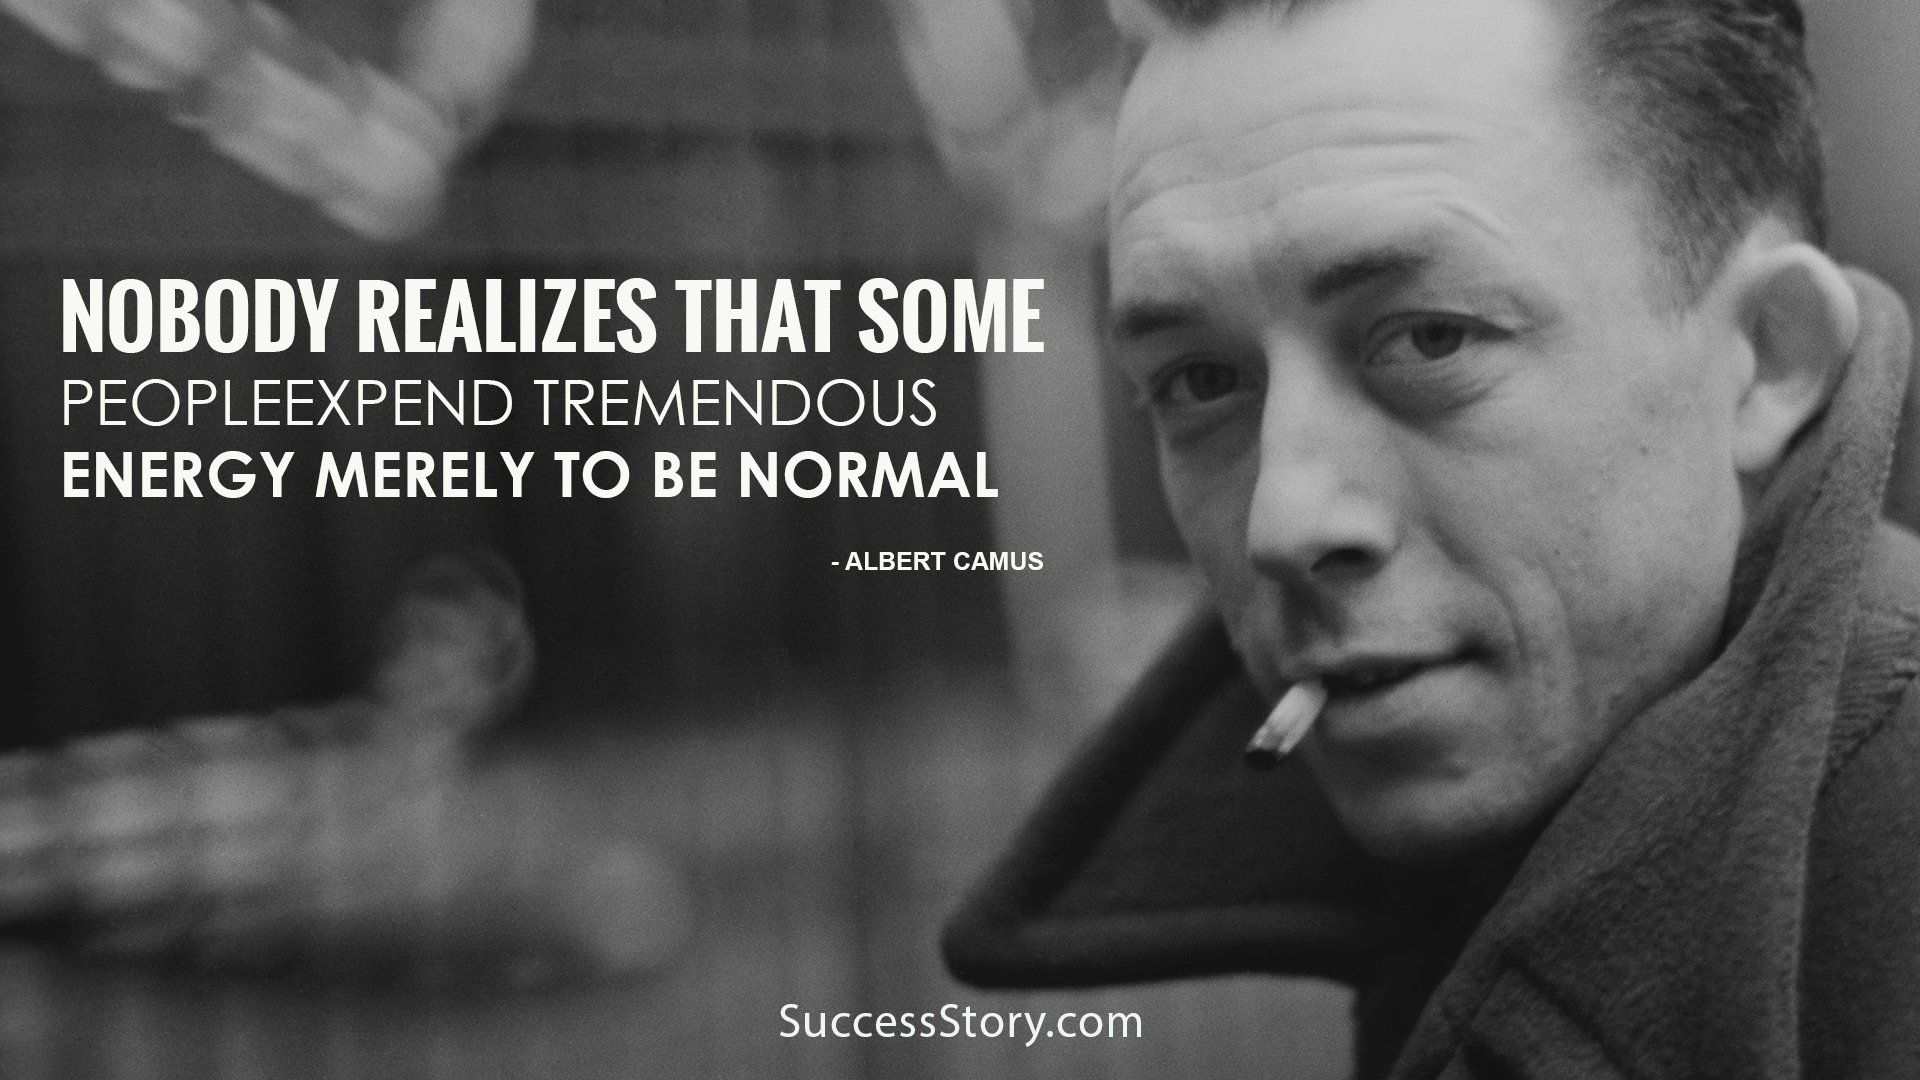 Albert Camus Quotes Stunning Αποτέλεσμα Εικόνας Για Albert Camus Quotes Nobody Realizes  Quotes